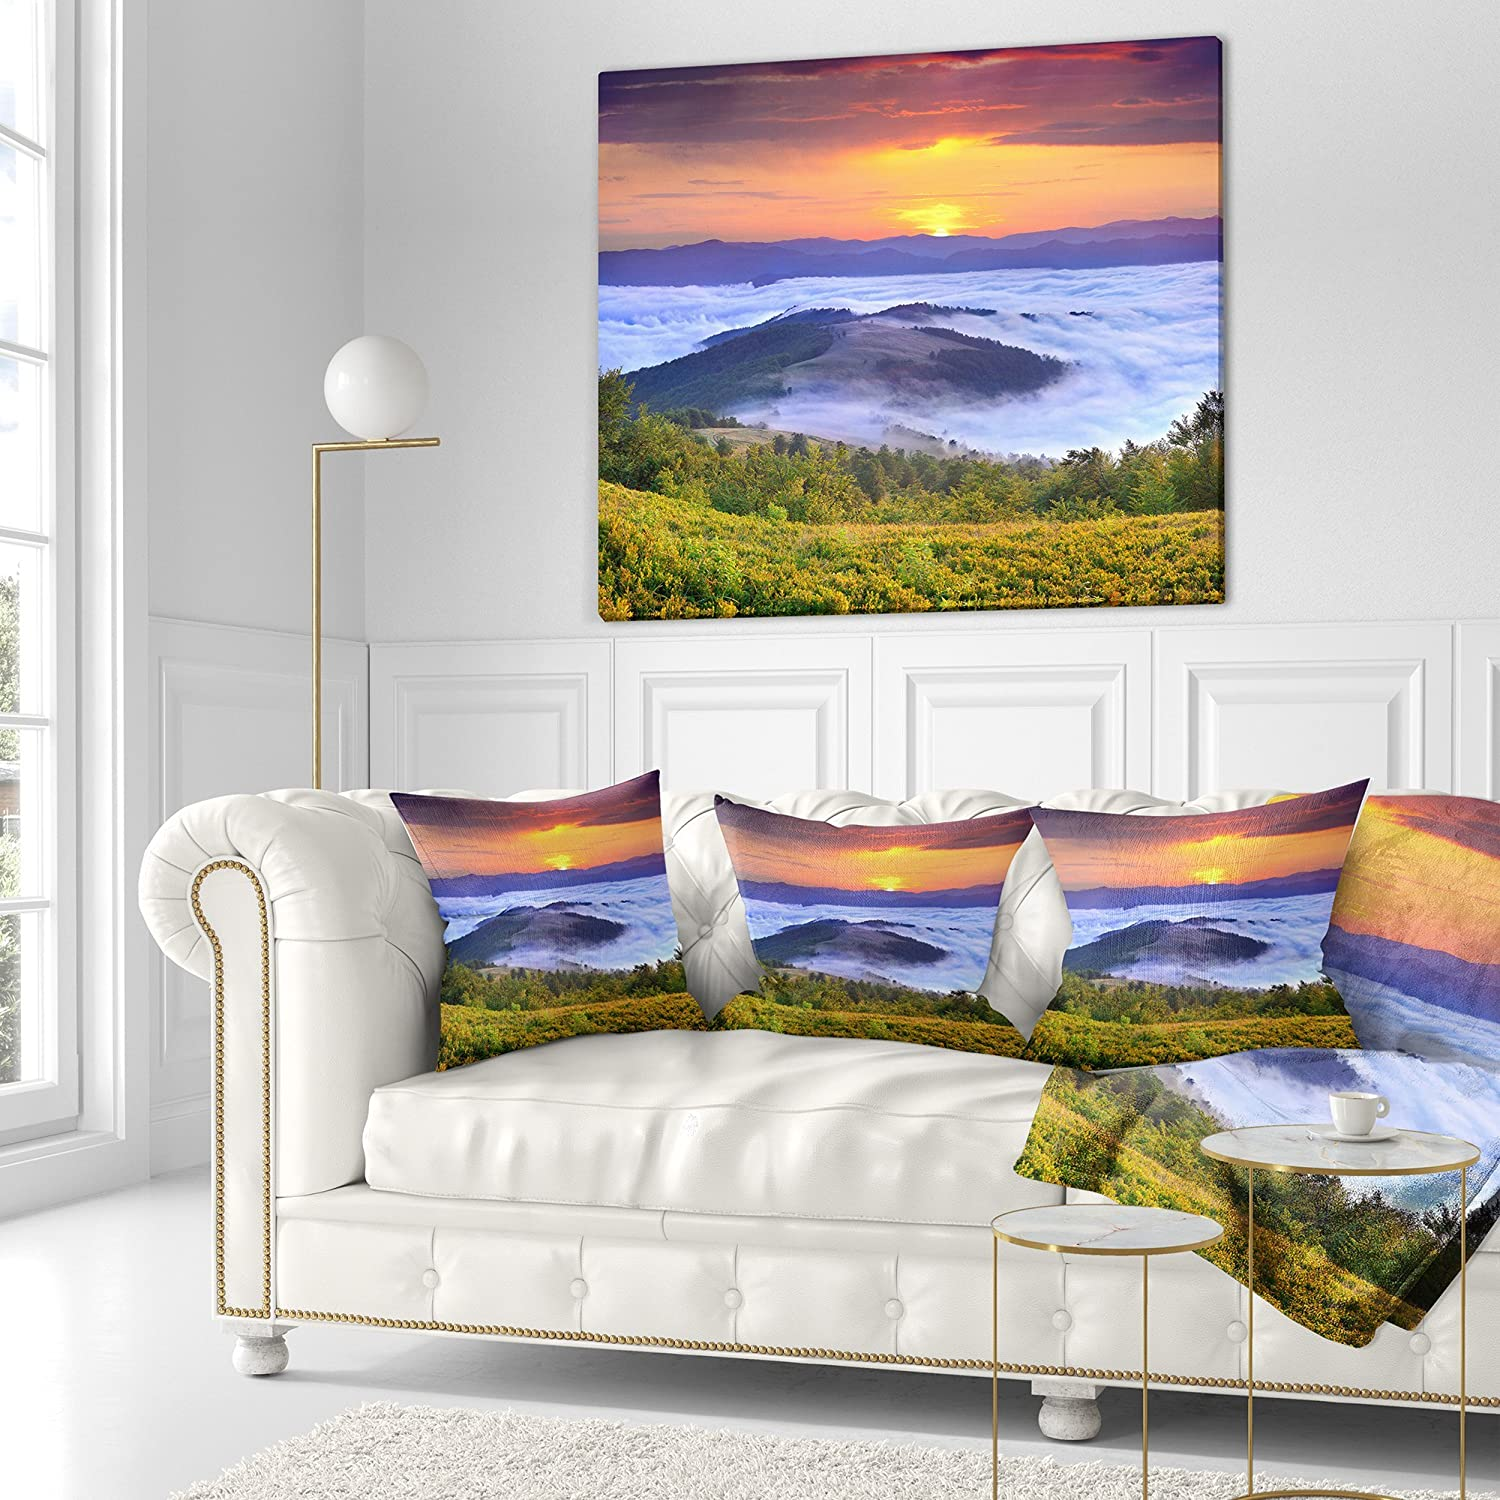 in Sofa Throw Pillow 16 in x 16 in Designart CU9618-16-16 Yellow Sunrise Over Blue Waters Landscape Photo Cushion Cover for Living Room